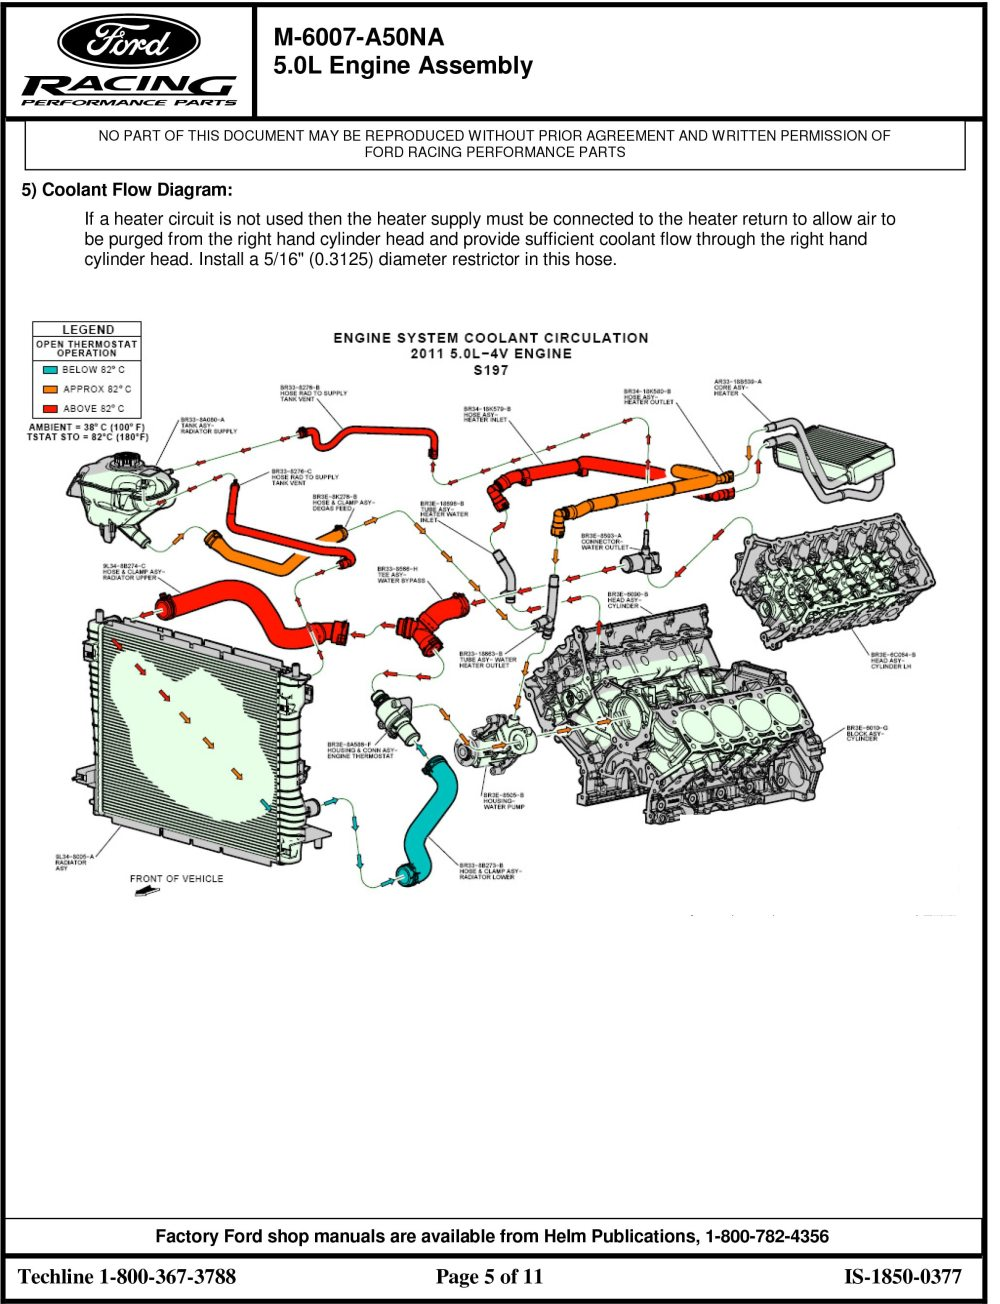 medium resolution of 5 0 engine coolant diagram wiring diagram yer ford mustang cooling system diagrams on engine coolant flow diagram